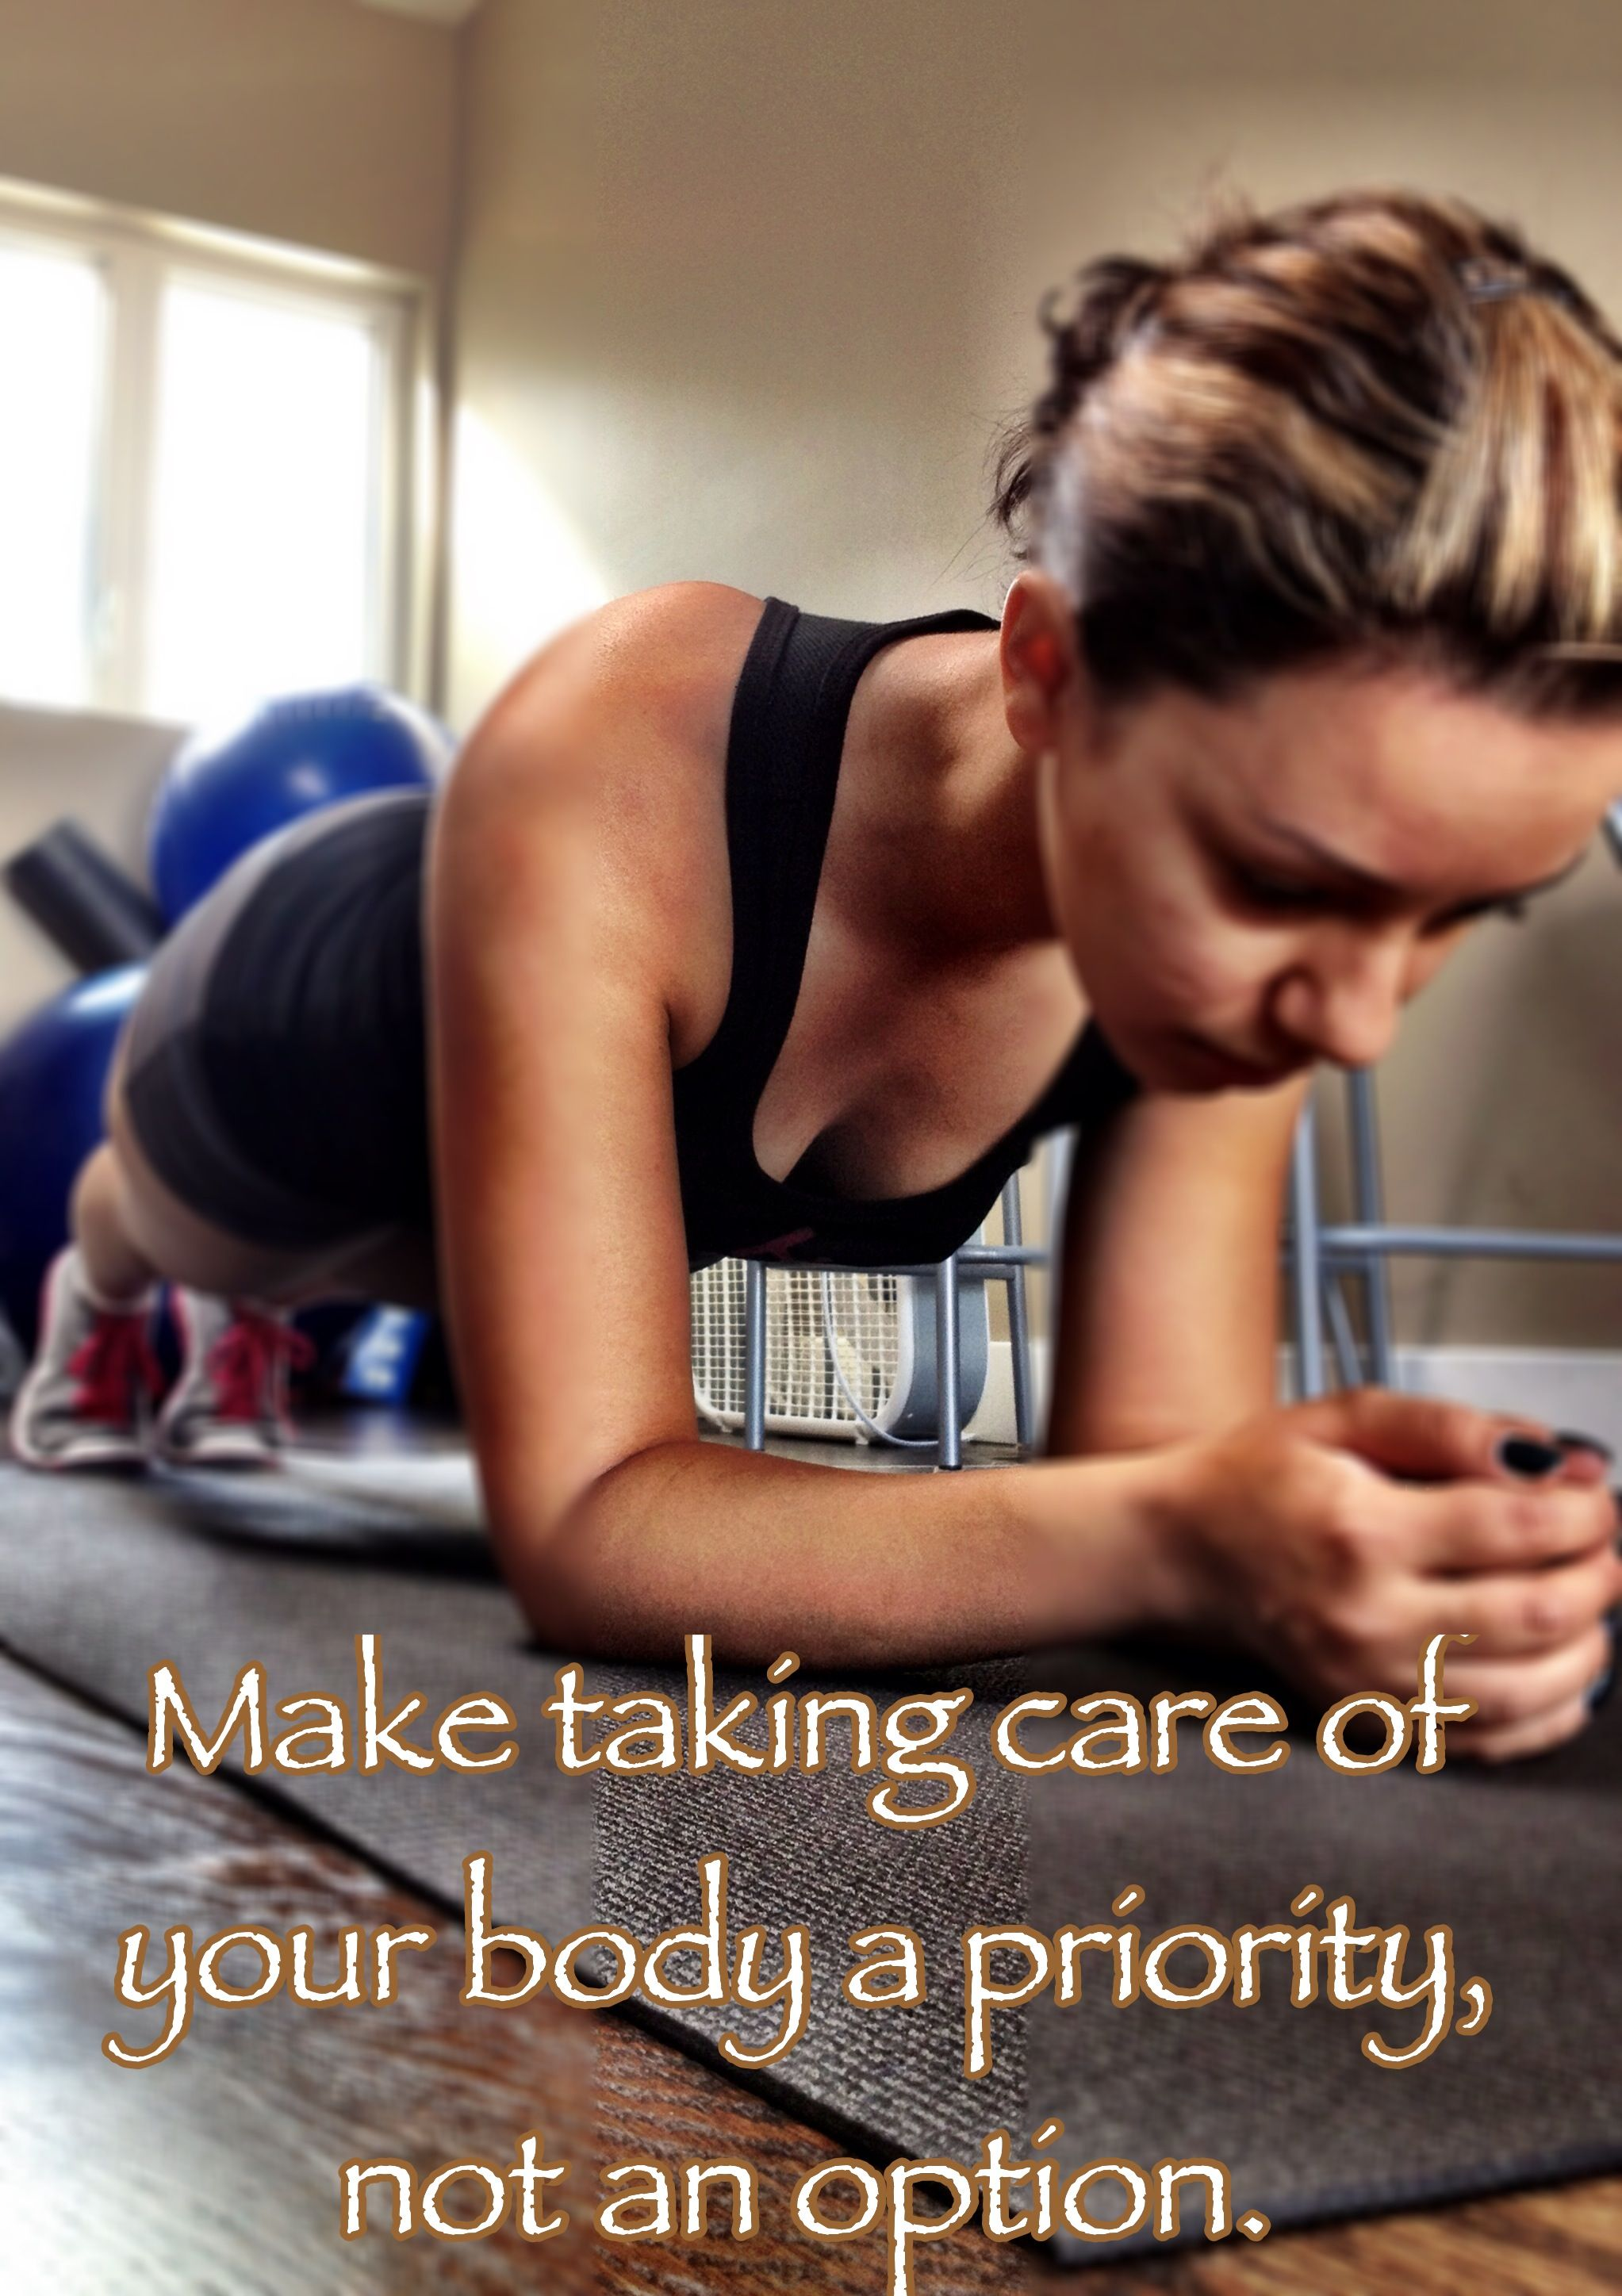 If You Don T Make Time To Take Care Of Yourself Nobody Else Will Do It For You Protect Your Time The Healthier And Stron Physical Wellness Get Fit Make Time